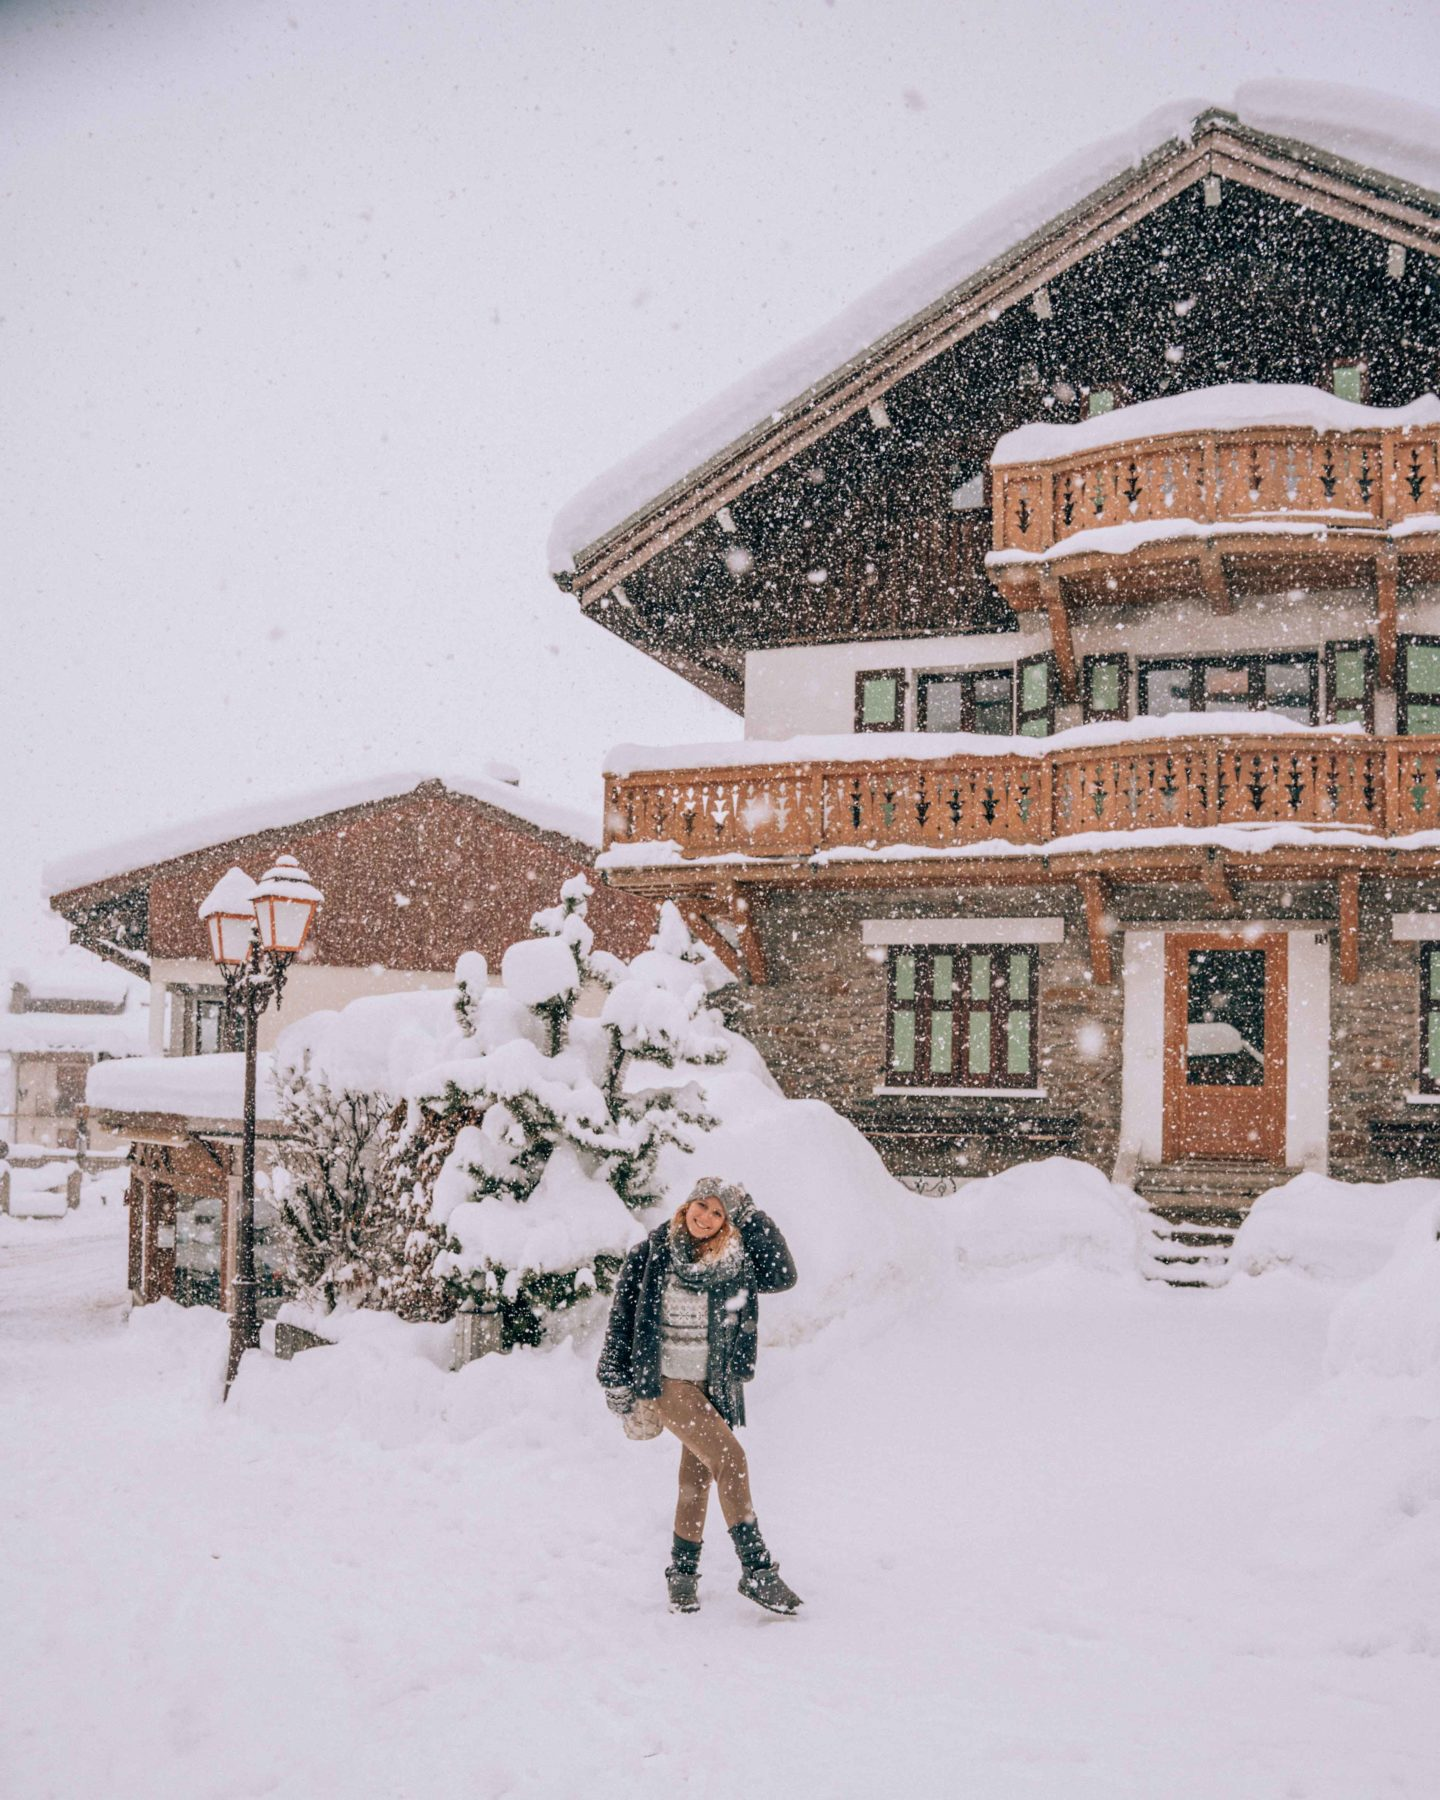 Where to go in winter